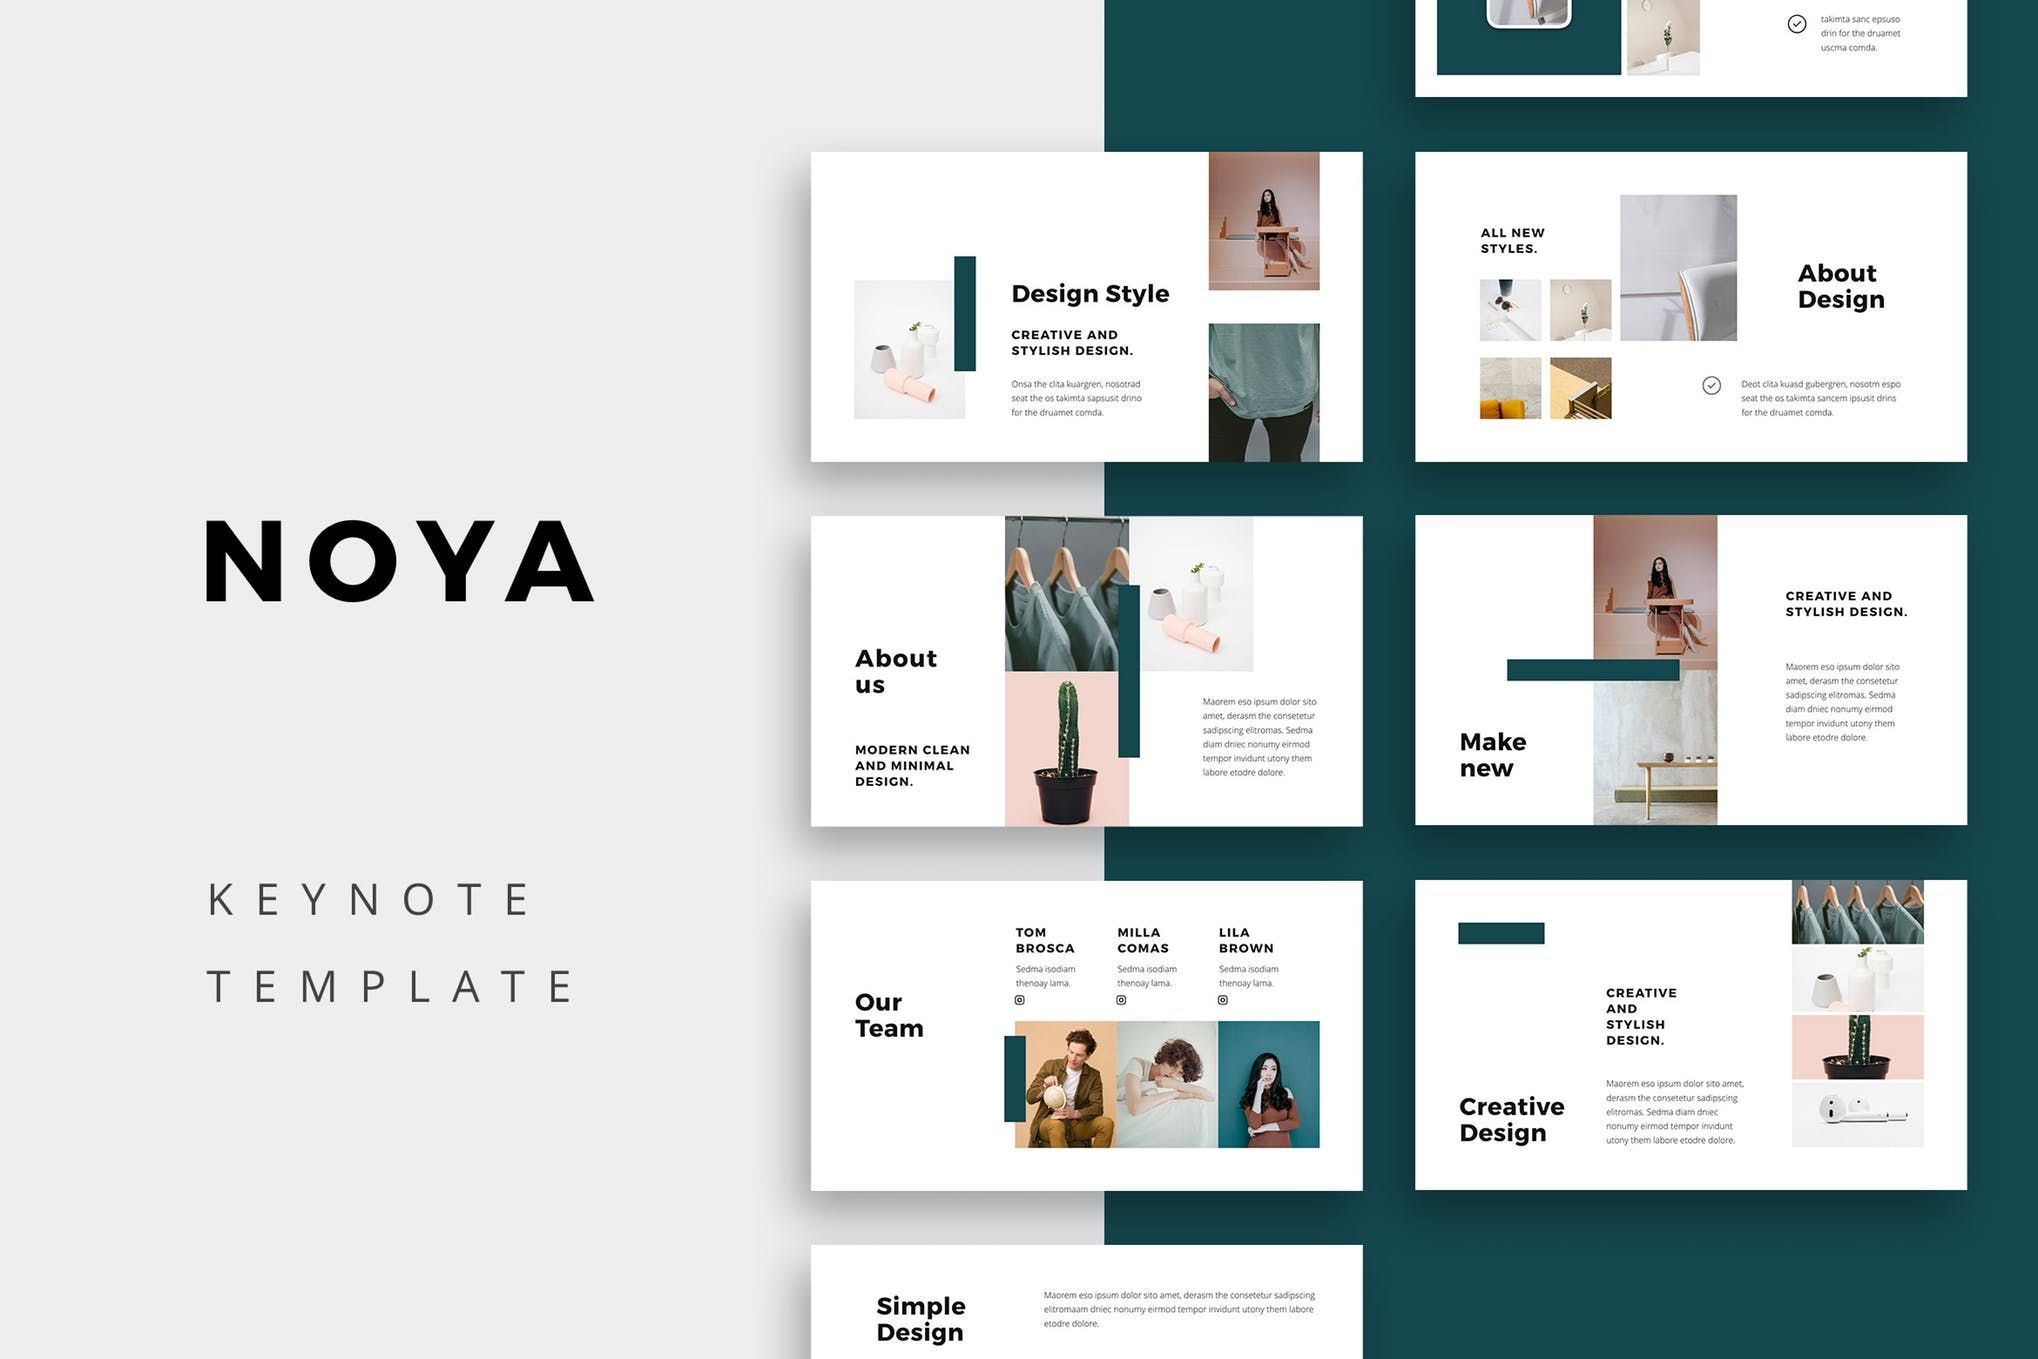 NOYA Keynote Template by Pixasquare on Simple